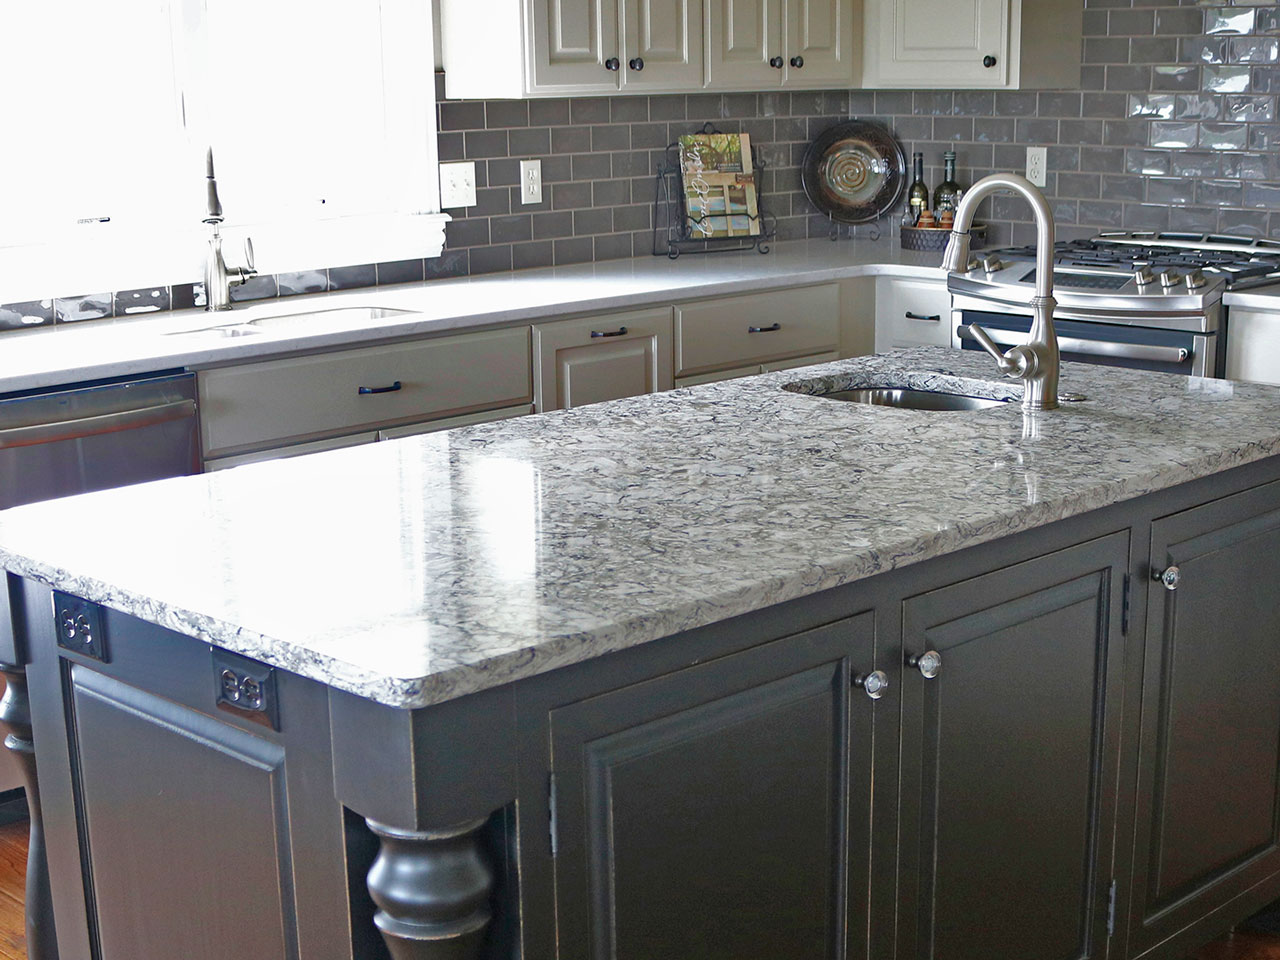 File Construction offers kitchen remodeling in a variety of styles and materials.